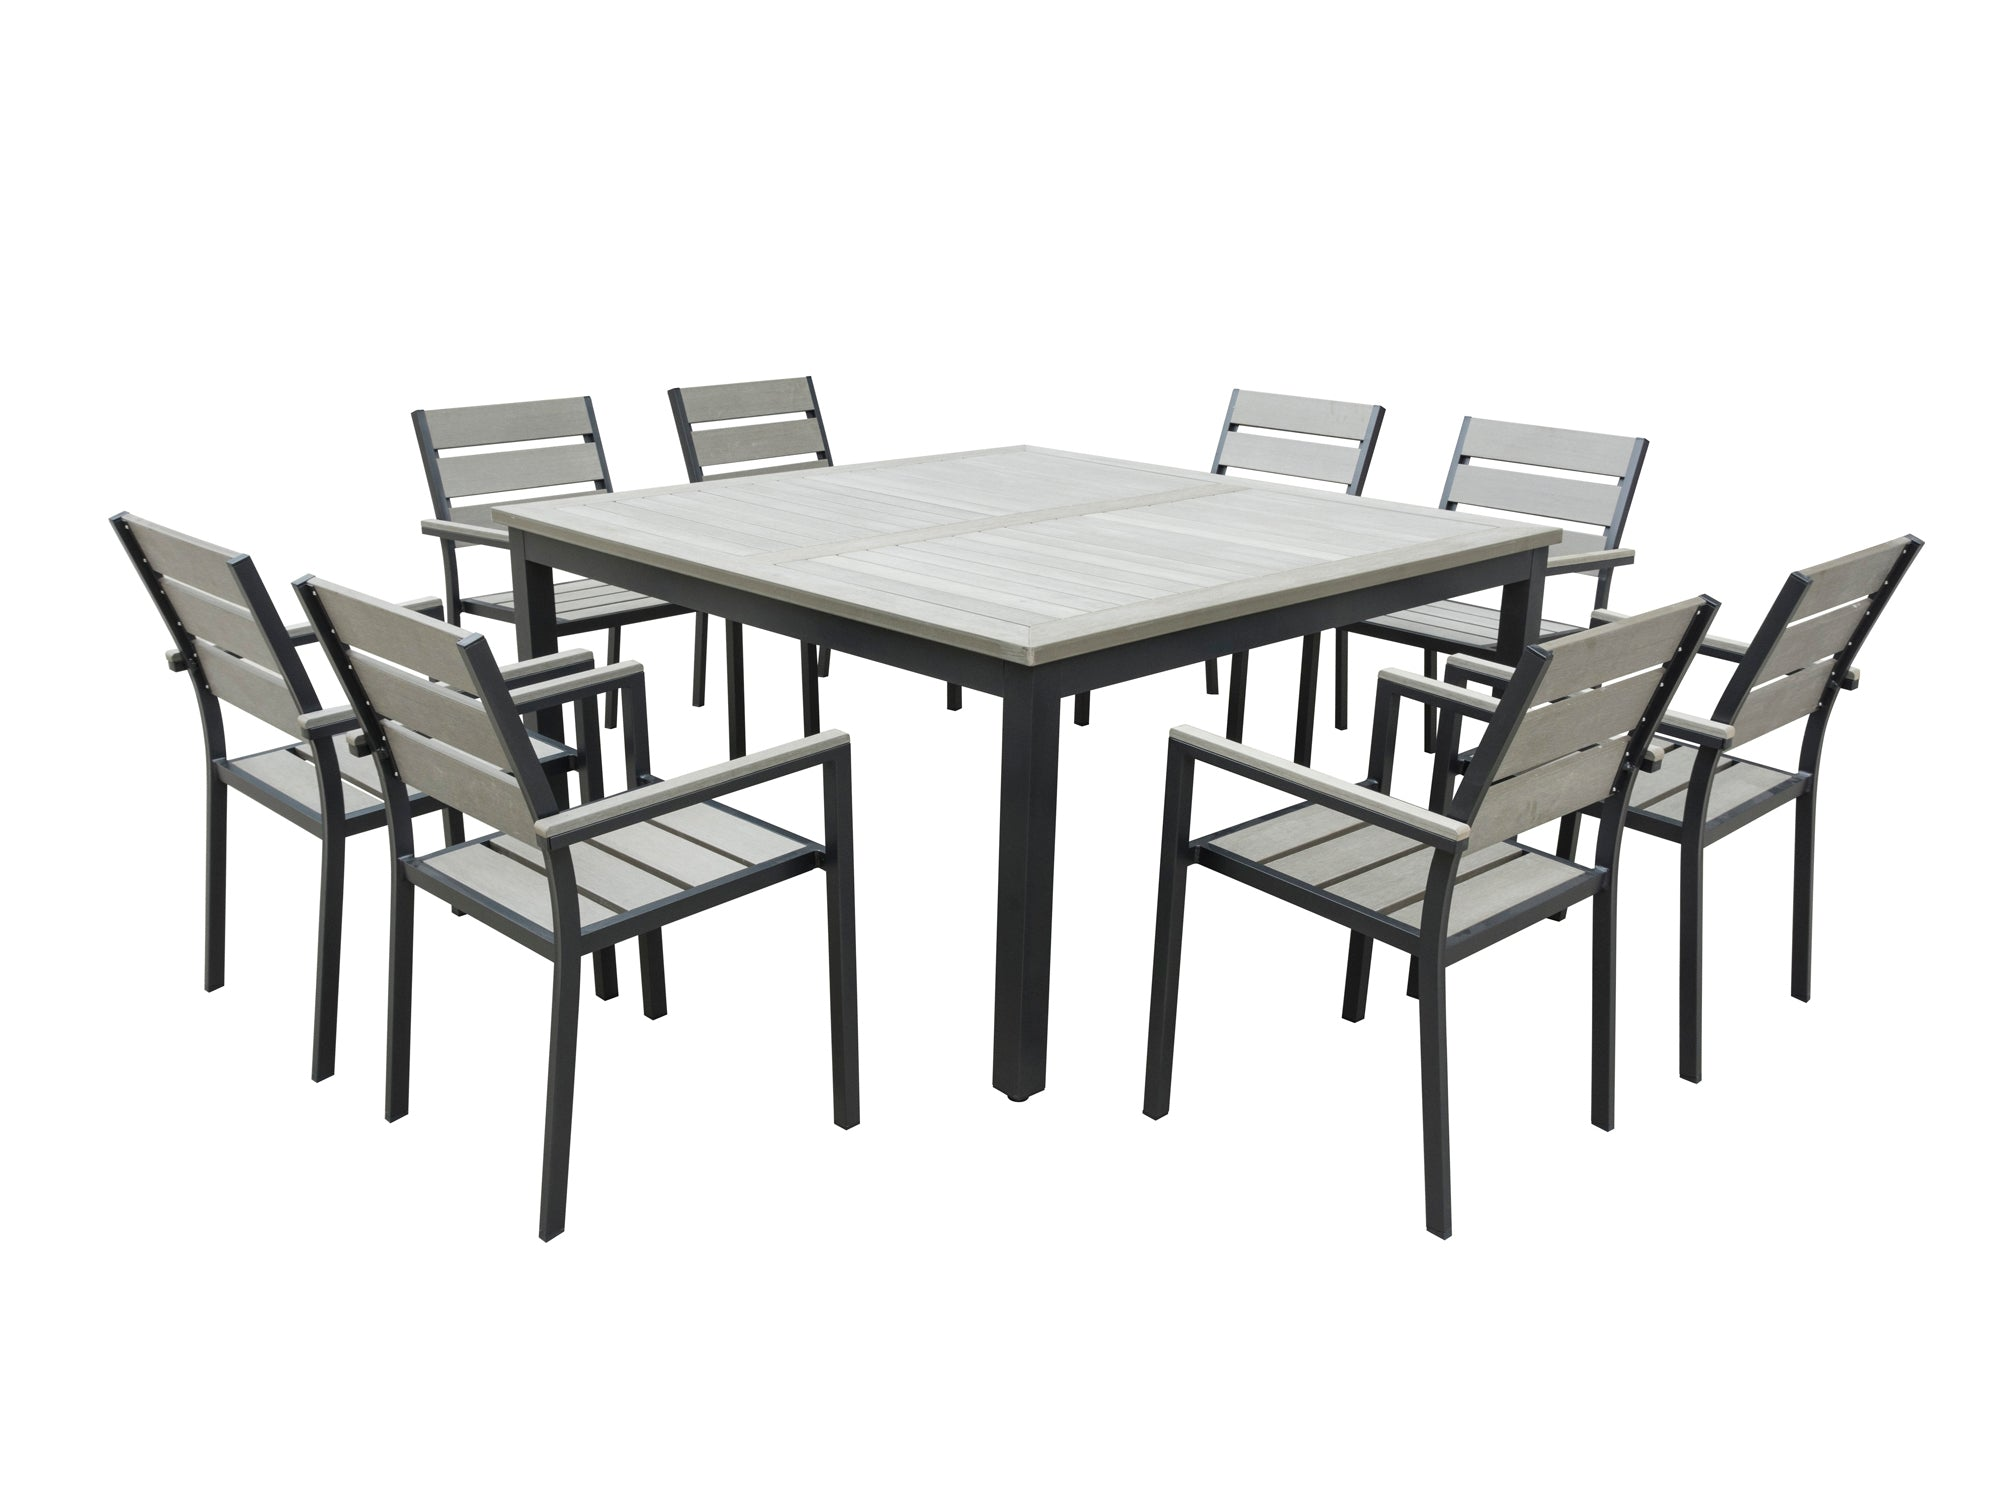 Brilliant 9 Piece Eco Wood Square Table Outdoor Patio Dining Set Cjindustries Chair Design For Home Cjindustriesco